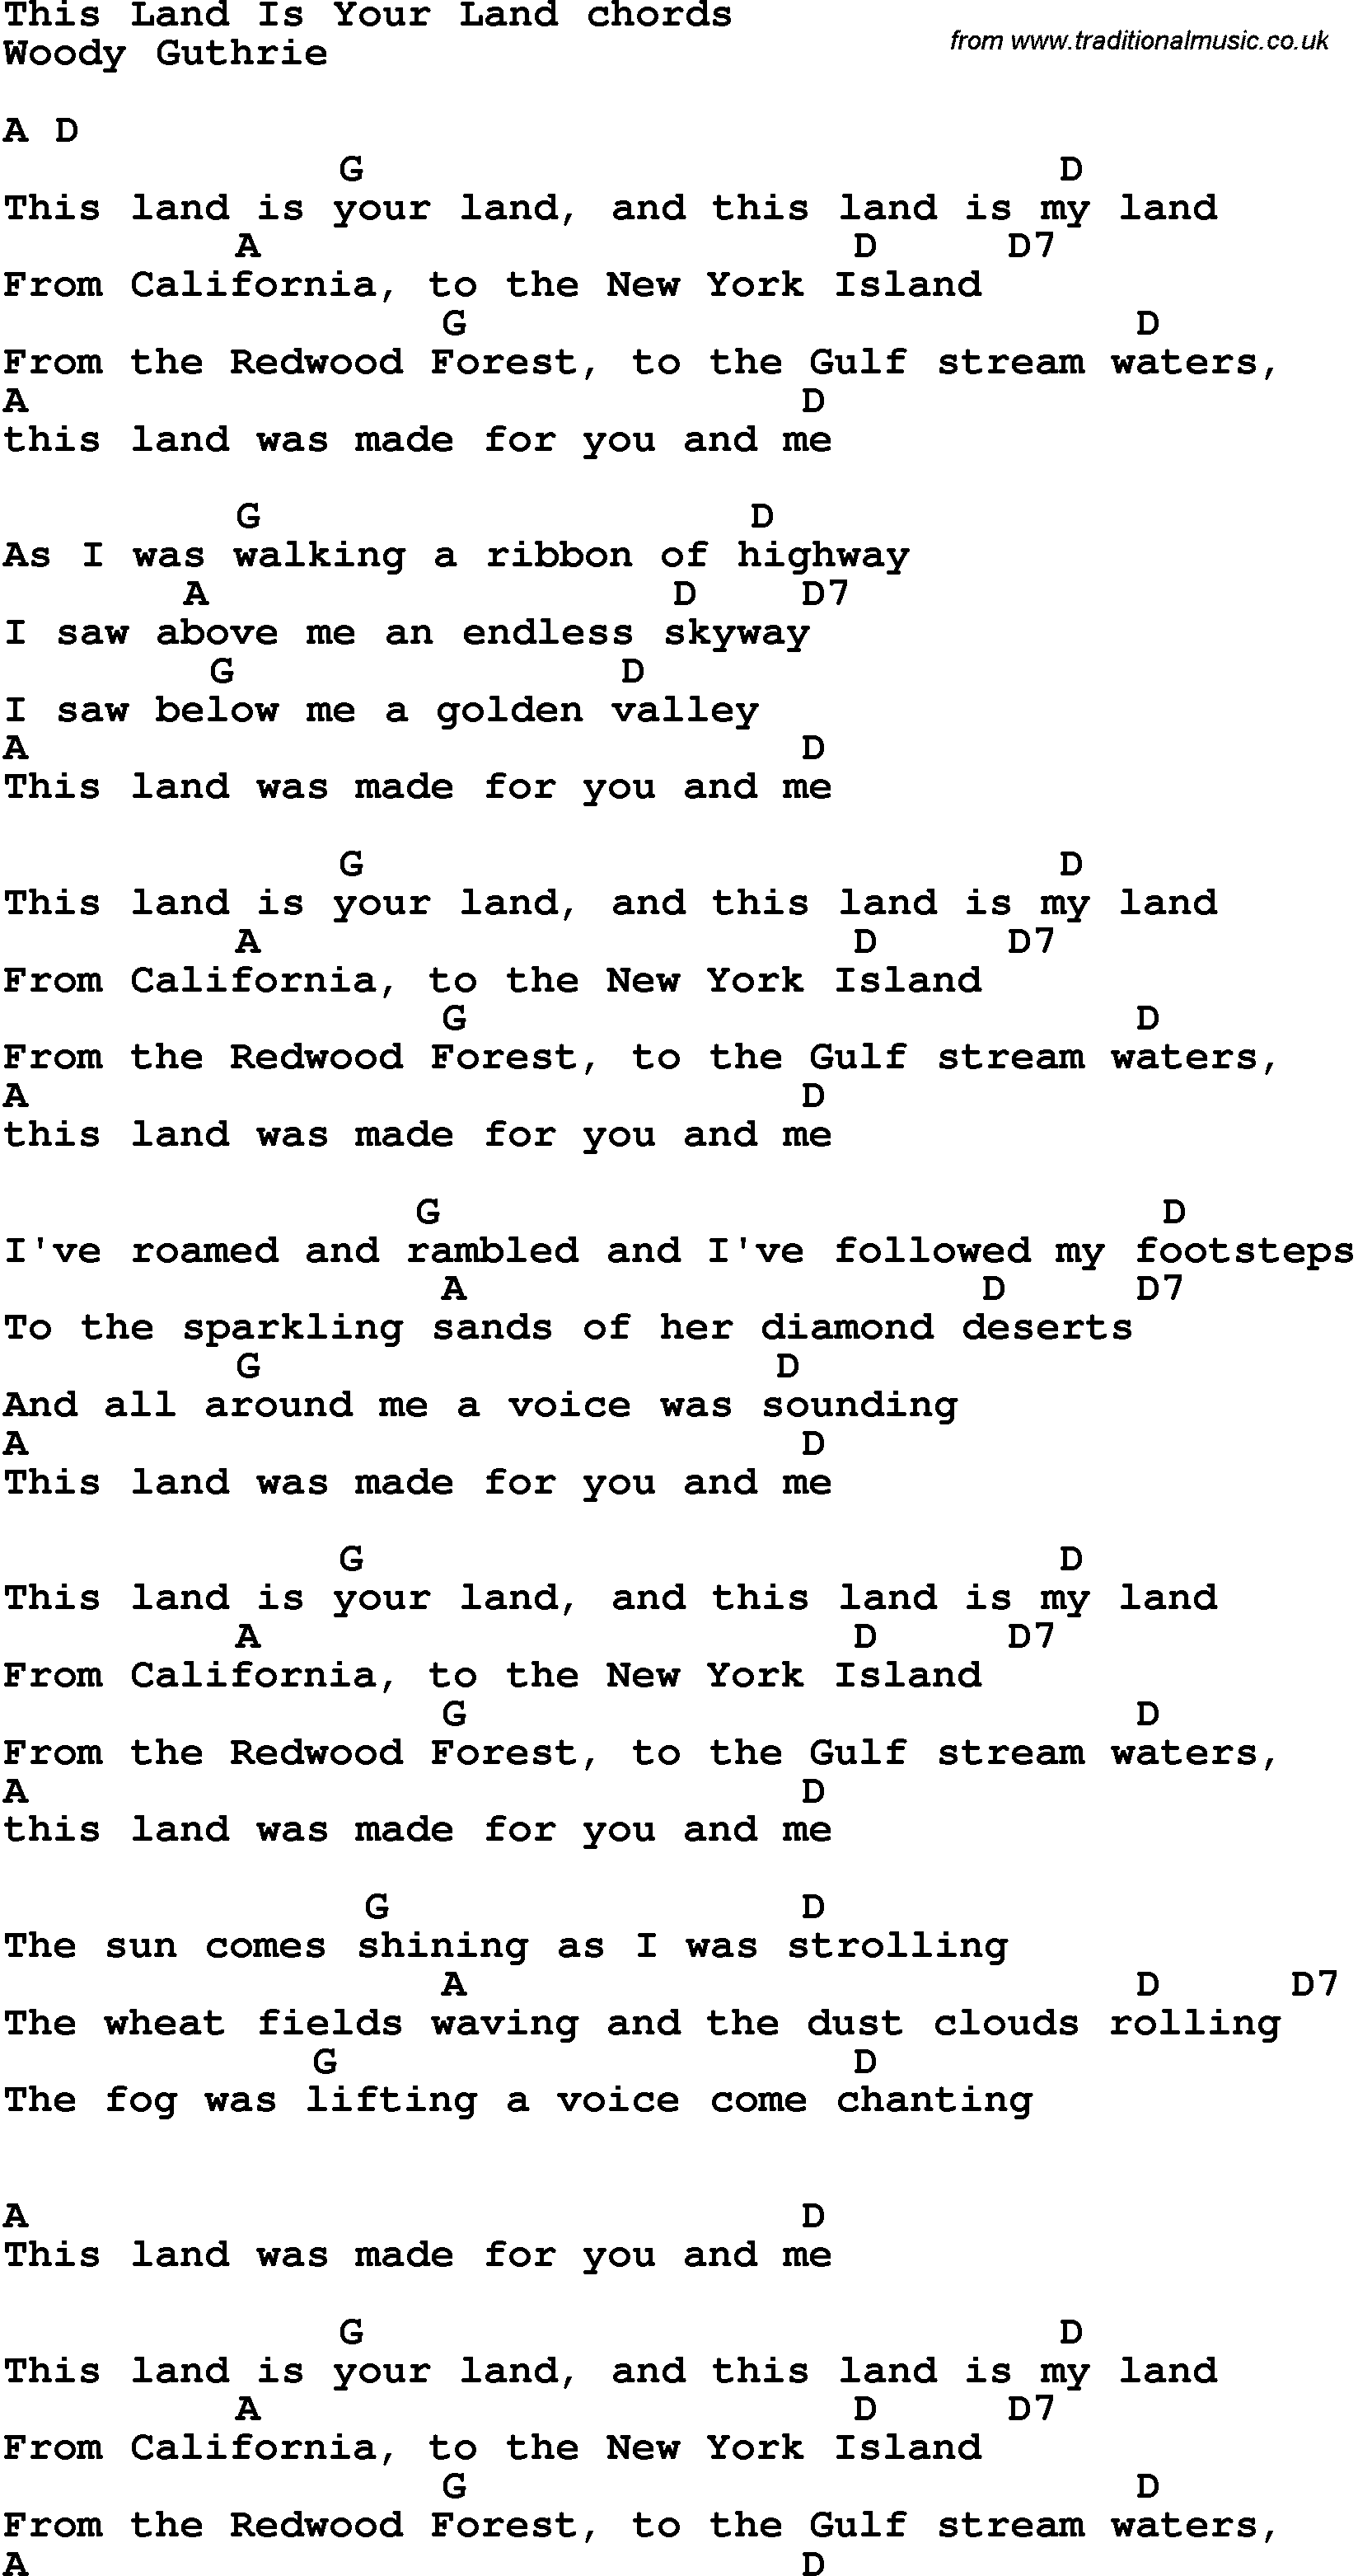 Song lyrics with guitar chords for mr sandman the chordettes song lyrics with guitar chords for mr sandman the chordettes 1954 chords and lyrics pinterest guitar chords guitars and songs hexwebz Image collections